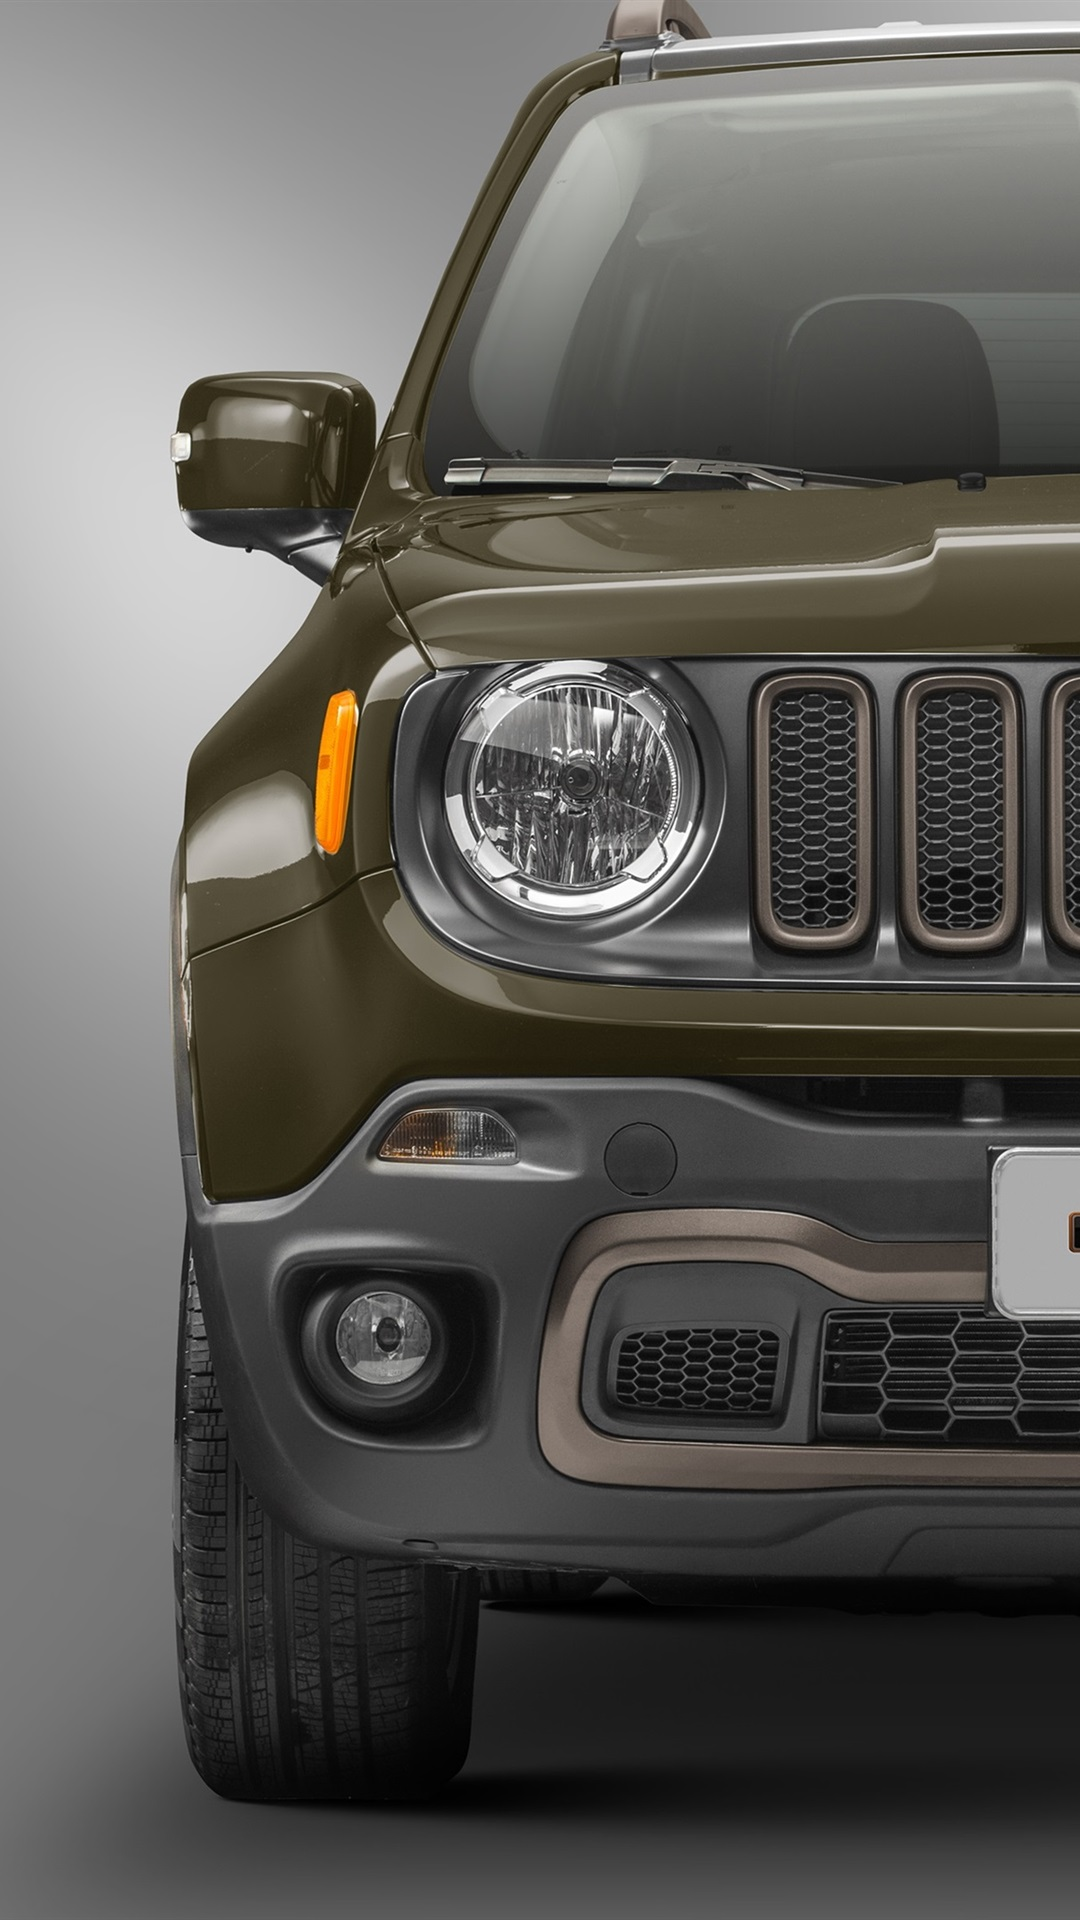 Jeep Renegade 75th Anniversary Car Front View 1080x1920